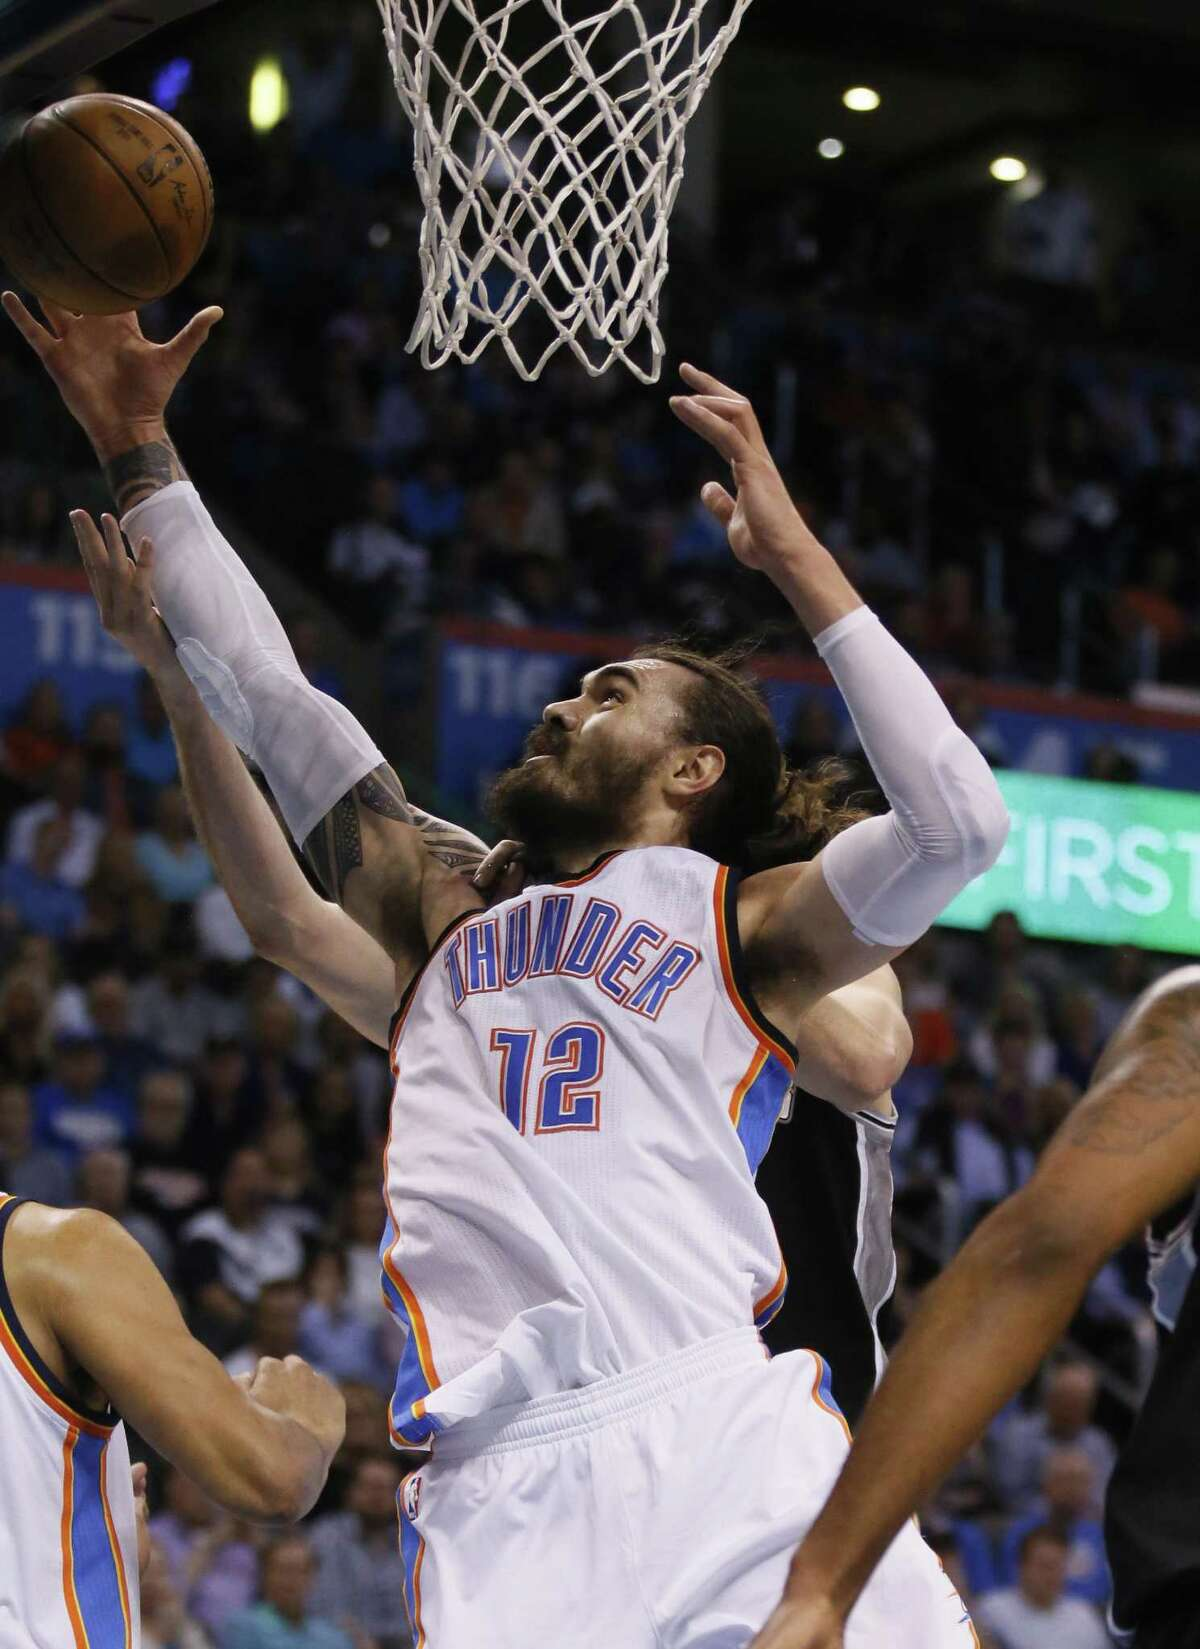 Oklahoma City Thunder center Steven Adams (12) grabs a rebound in front of San Antonio Spurs center Pau Gasol, rear, in the first quarter of an NBA basketball game in Oklahoma City, Friday, March 31, 2017. (AP Photo/Sue Ogrocki)